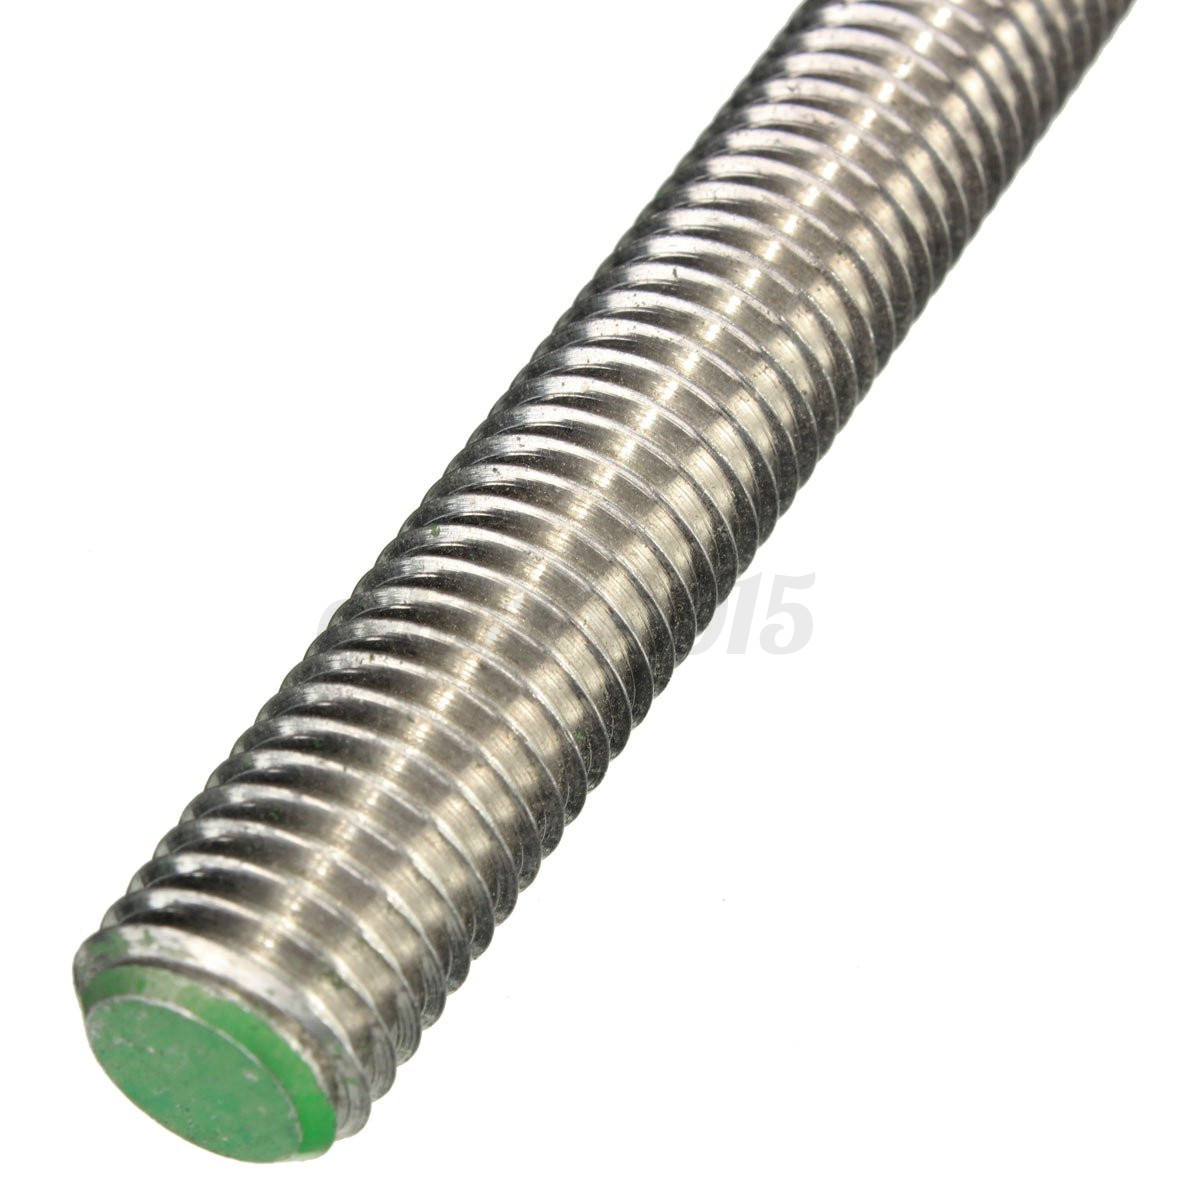 Stainless steel threaded rod bar studding allthread m